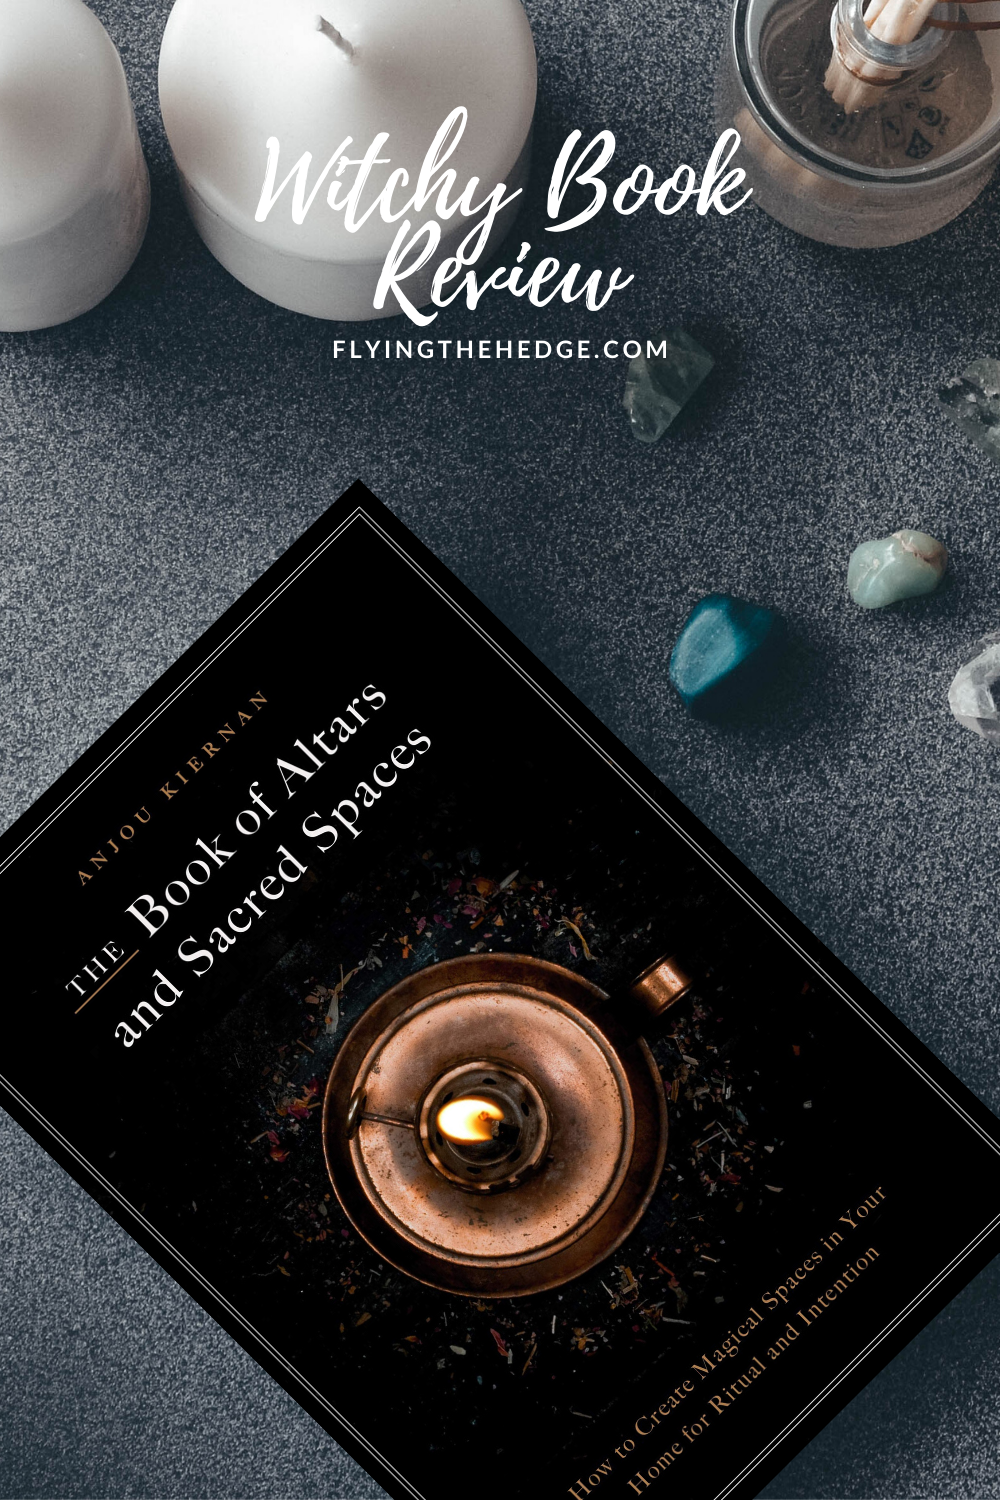 The Book of Altars and Sacred Spaces by Anjou Kiernan, book review, witch, witchcraft, altar, sacred space, witchy, occult, Wheel of the Year, sabbats